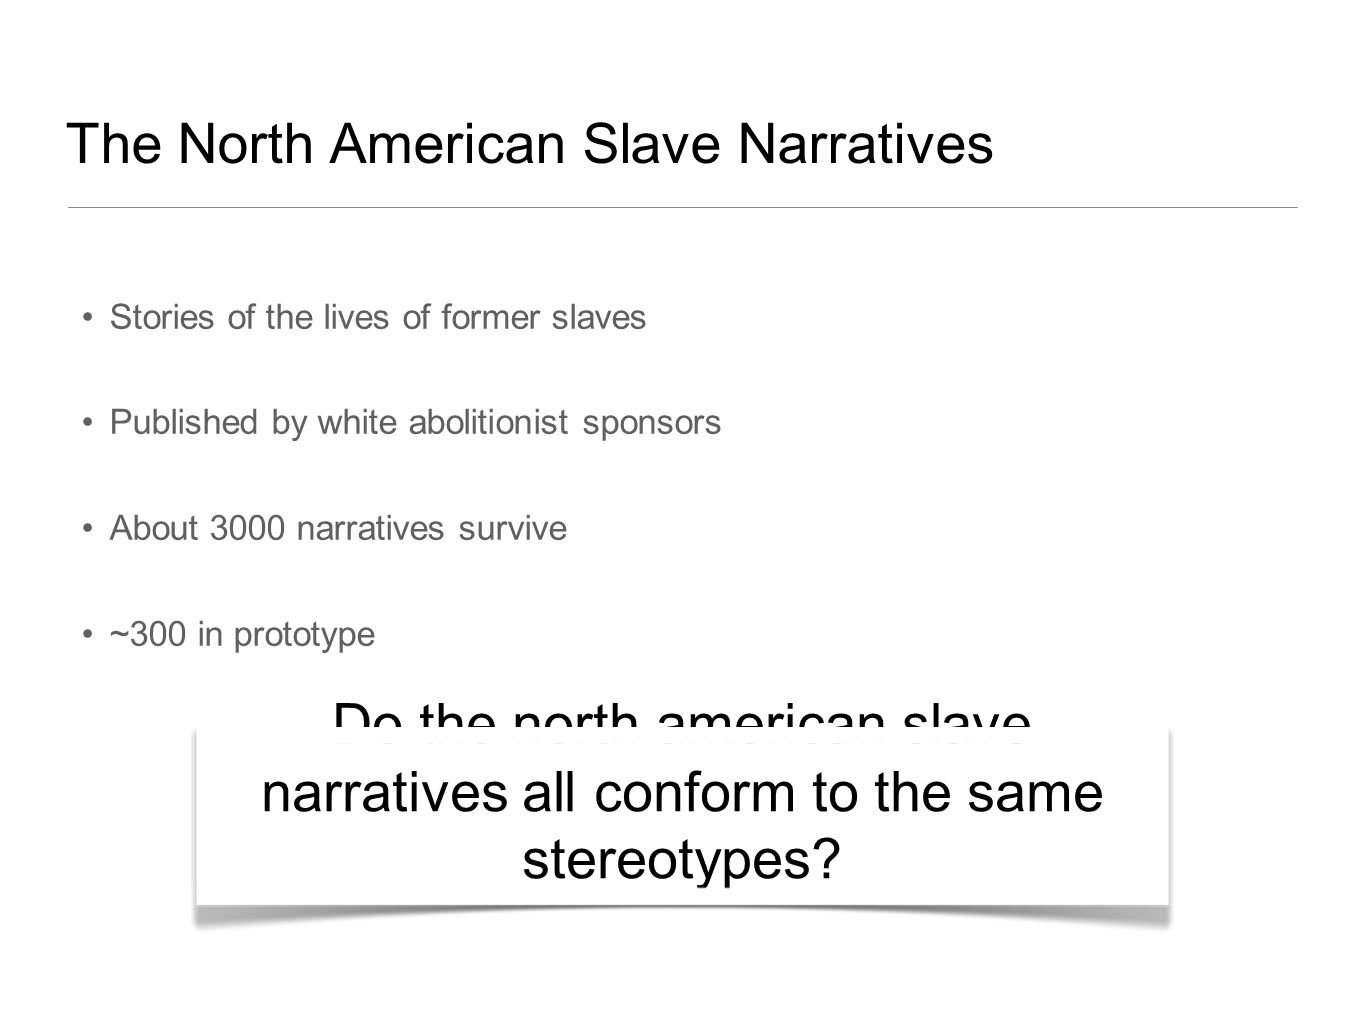 The North American Slave Narratives Stories of the lives of former slaves Published by white abolitionist sponsors About 3000 narratives survive ~300 in prototype Do the north american slave narratives all conform to the same stereotypes